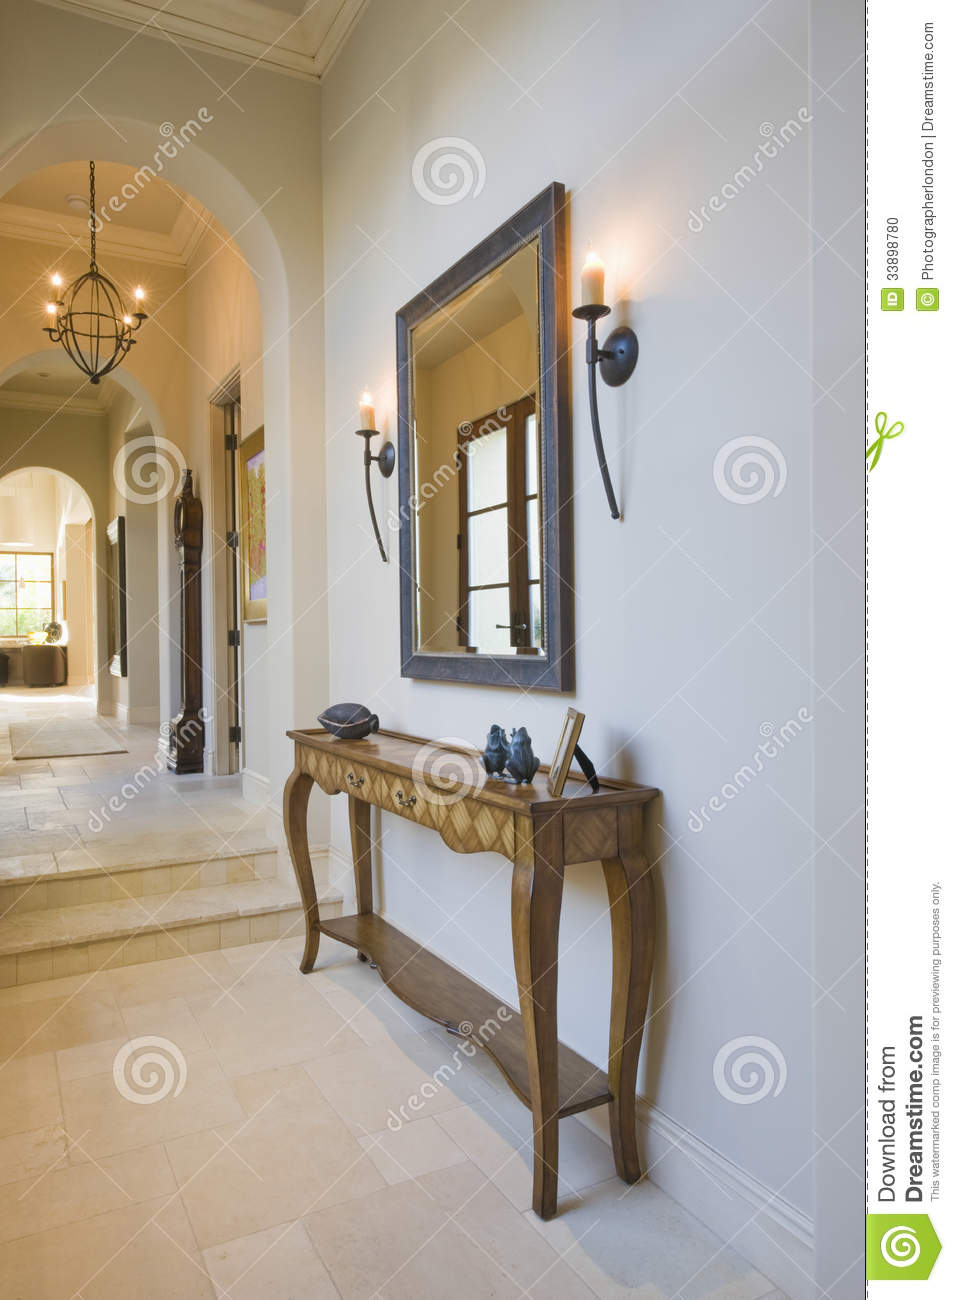 Antique Console Table With Mirror In Hallway Stock Photo Image 33898780